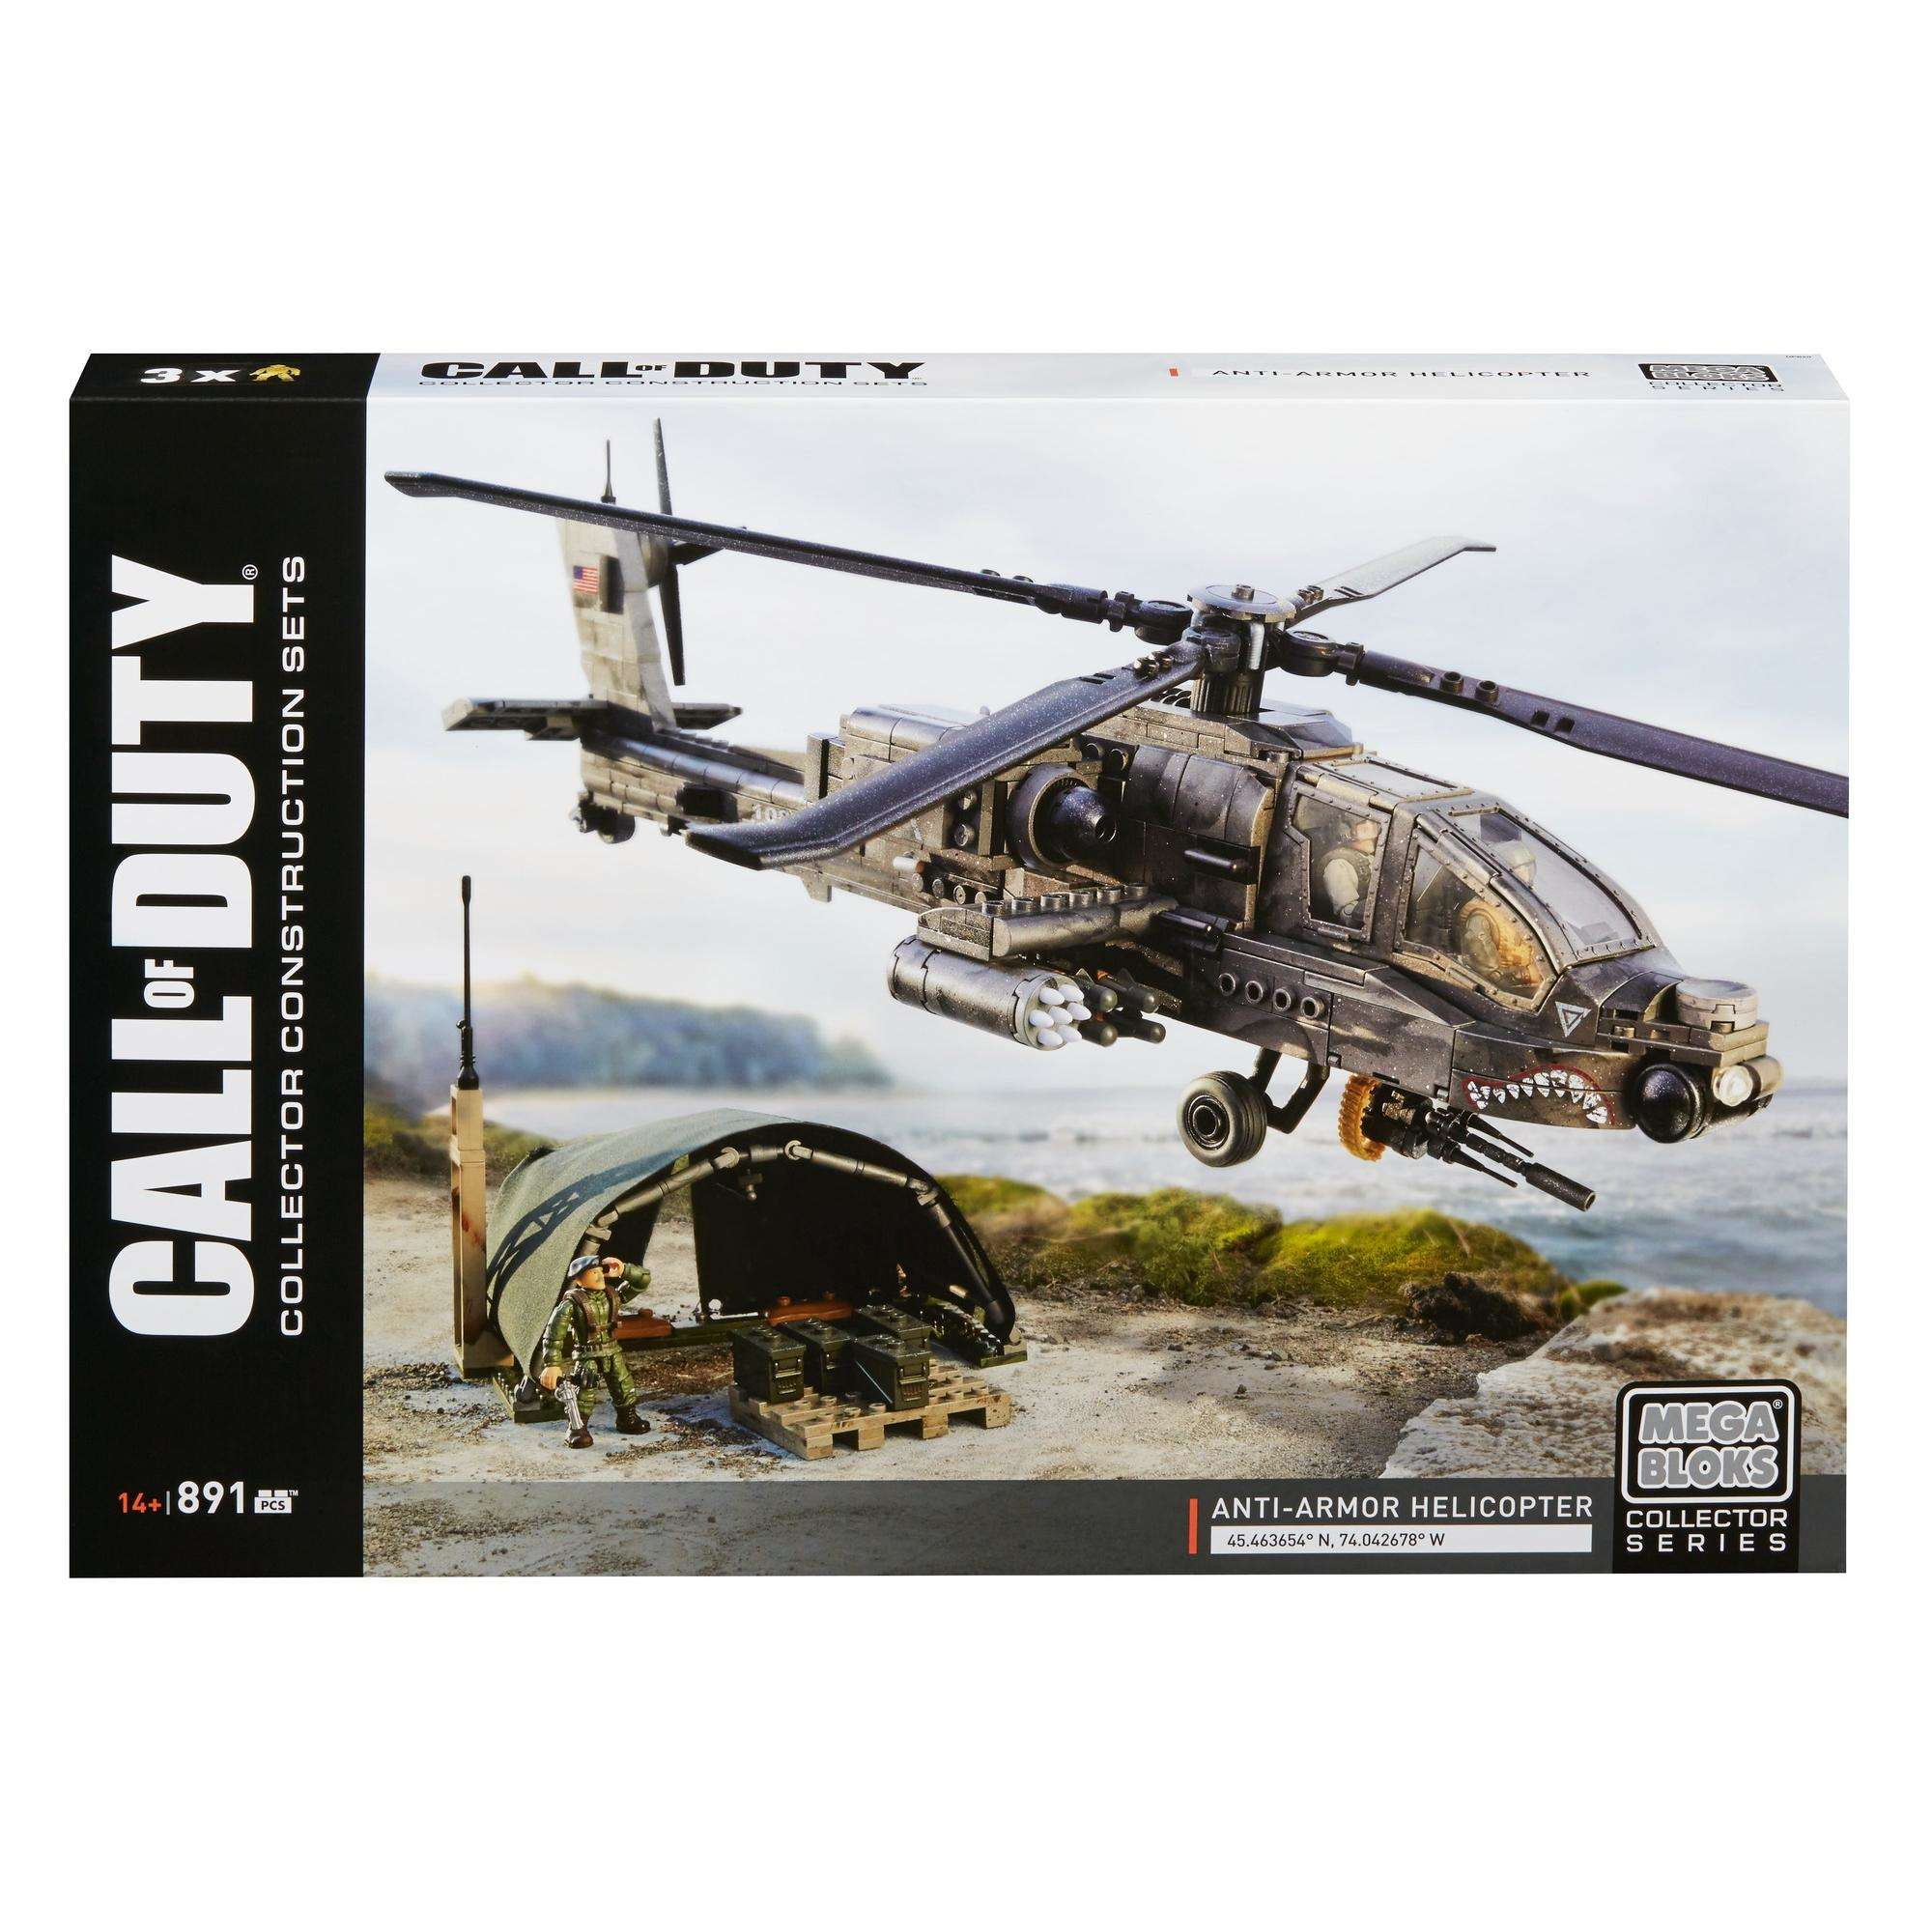 Mega Consturx Call Of Duty Anti-Armor Helicopter Collector Construction Set by Mattel